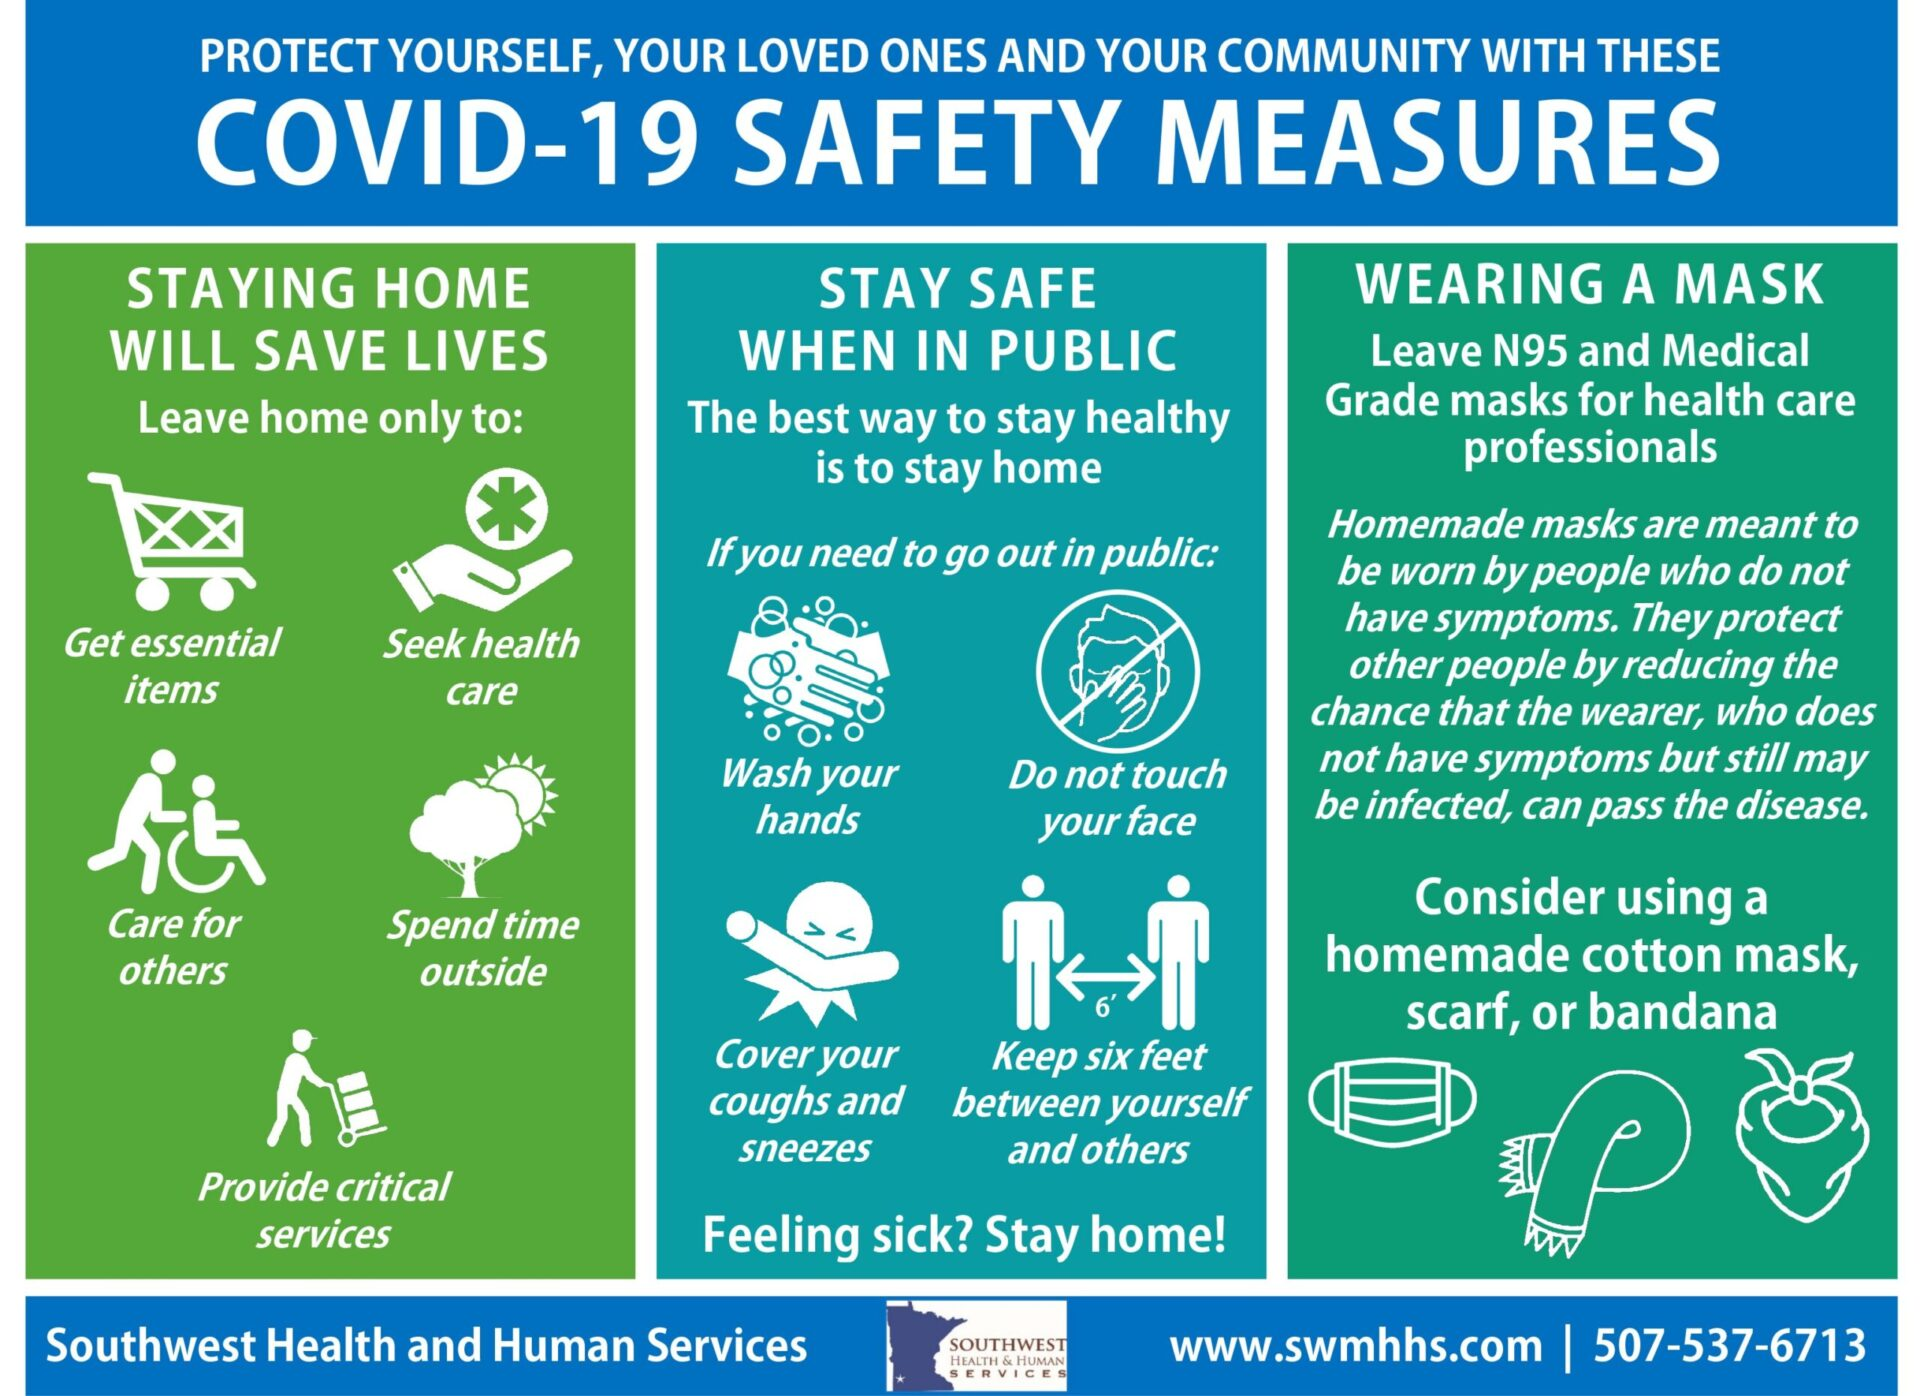 COVID Safety Measures